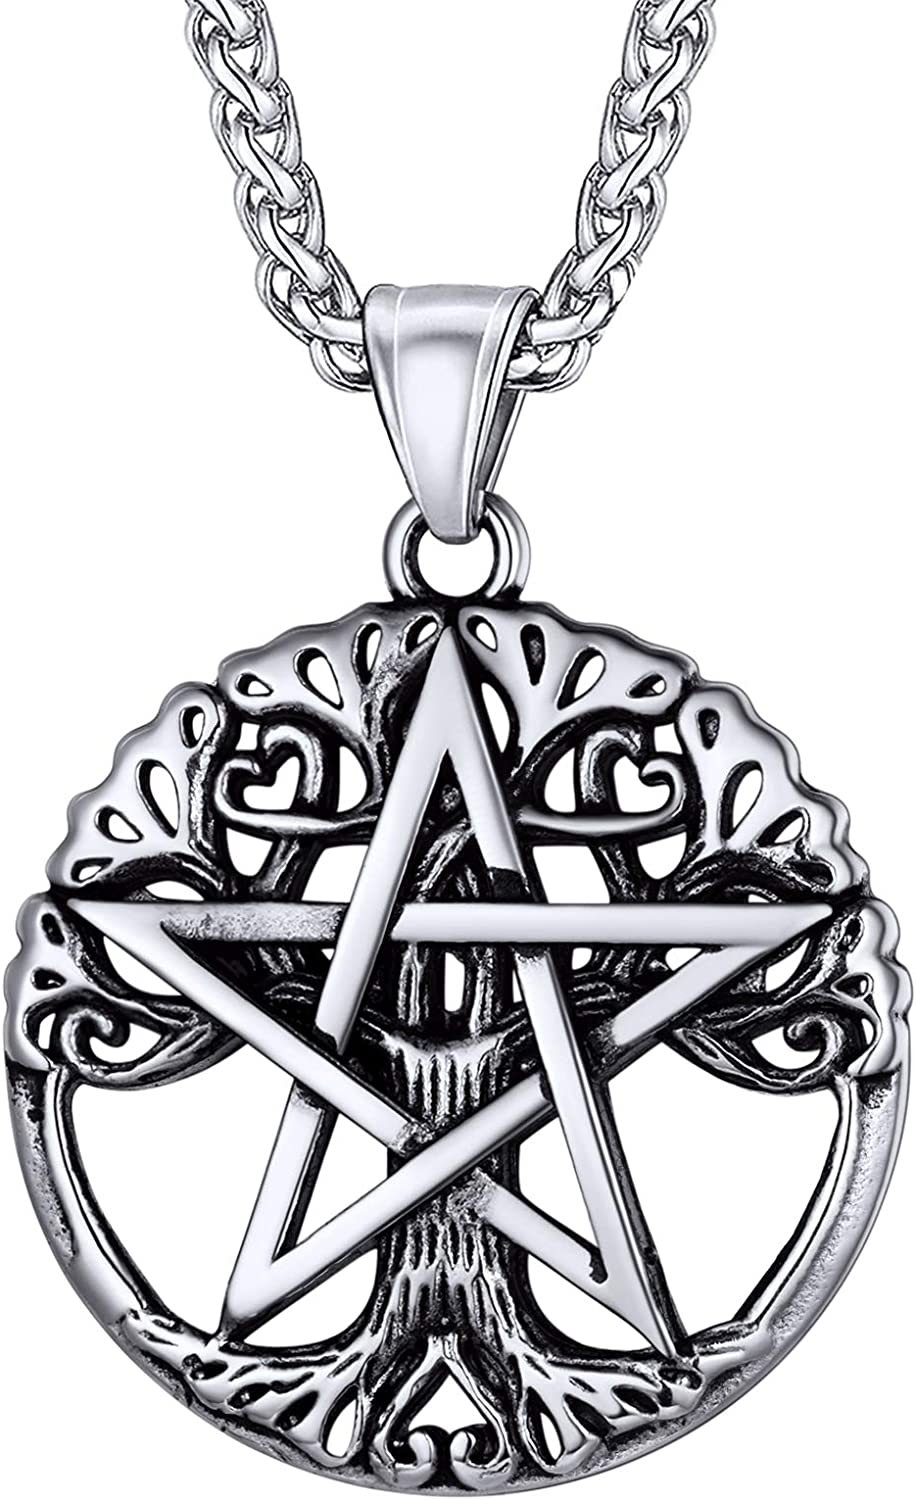 U7 Pentagram 5 ☆ very popular Necklace Selling Stainless Steel Ancient Chain Sym Talisman